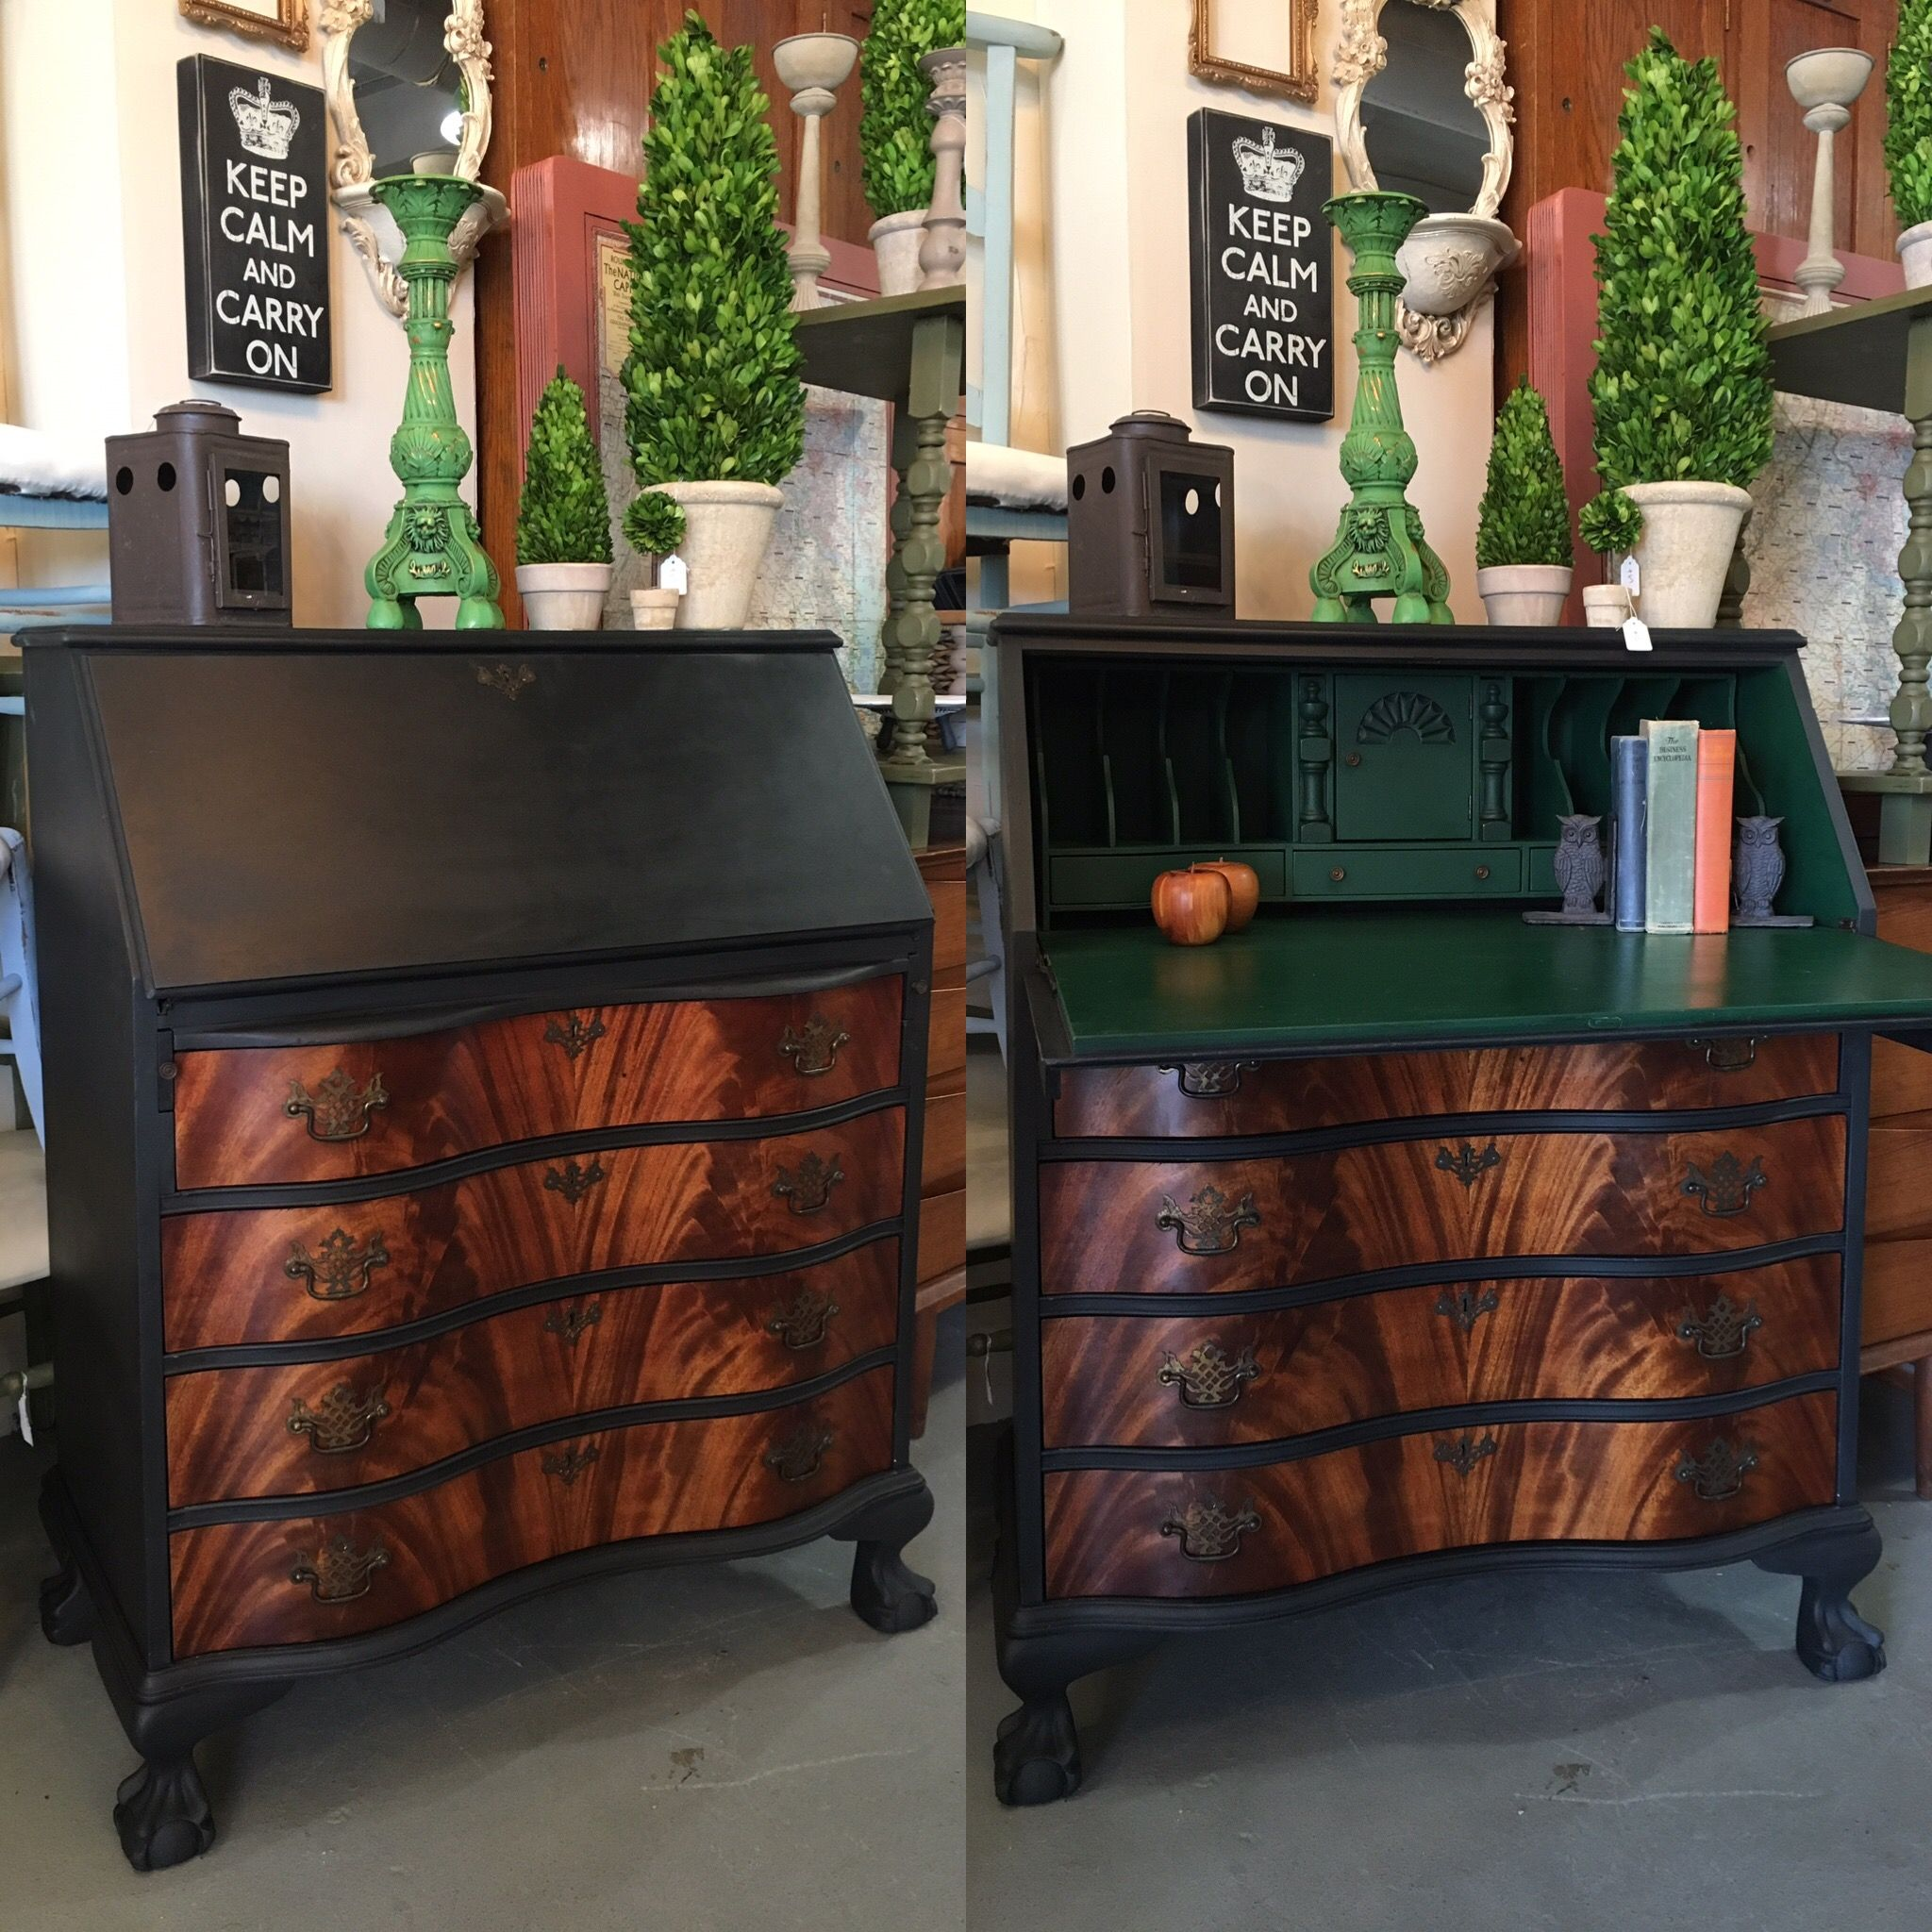 a styled an cocktail bar pin hendricks the may and from be vintage this drop campari start desk antique with secretary at barware of front negroni home